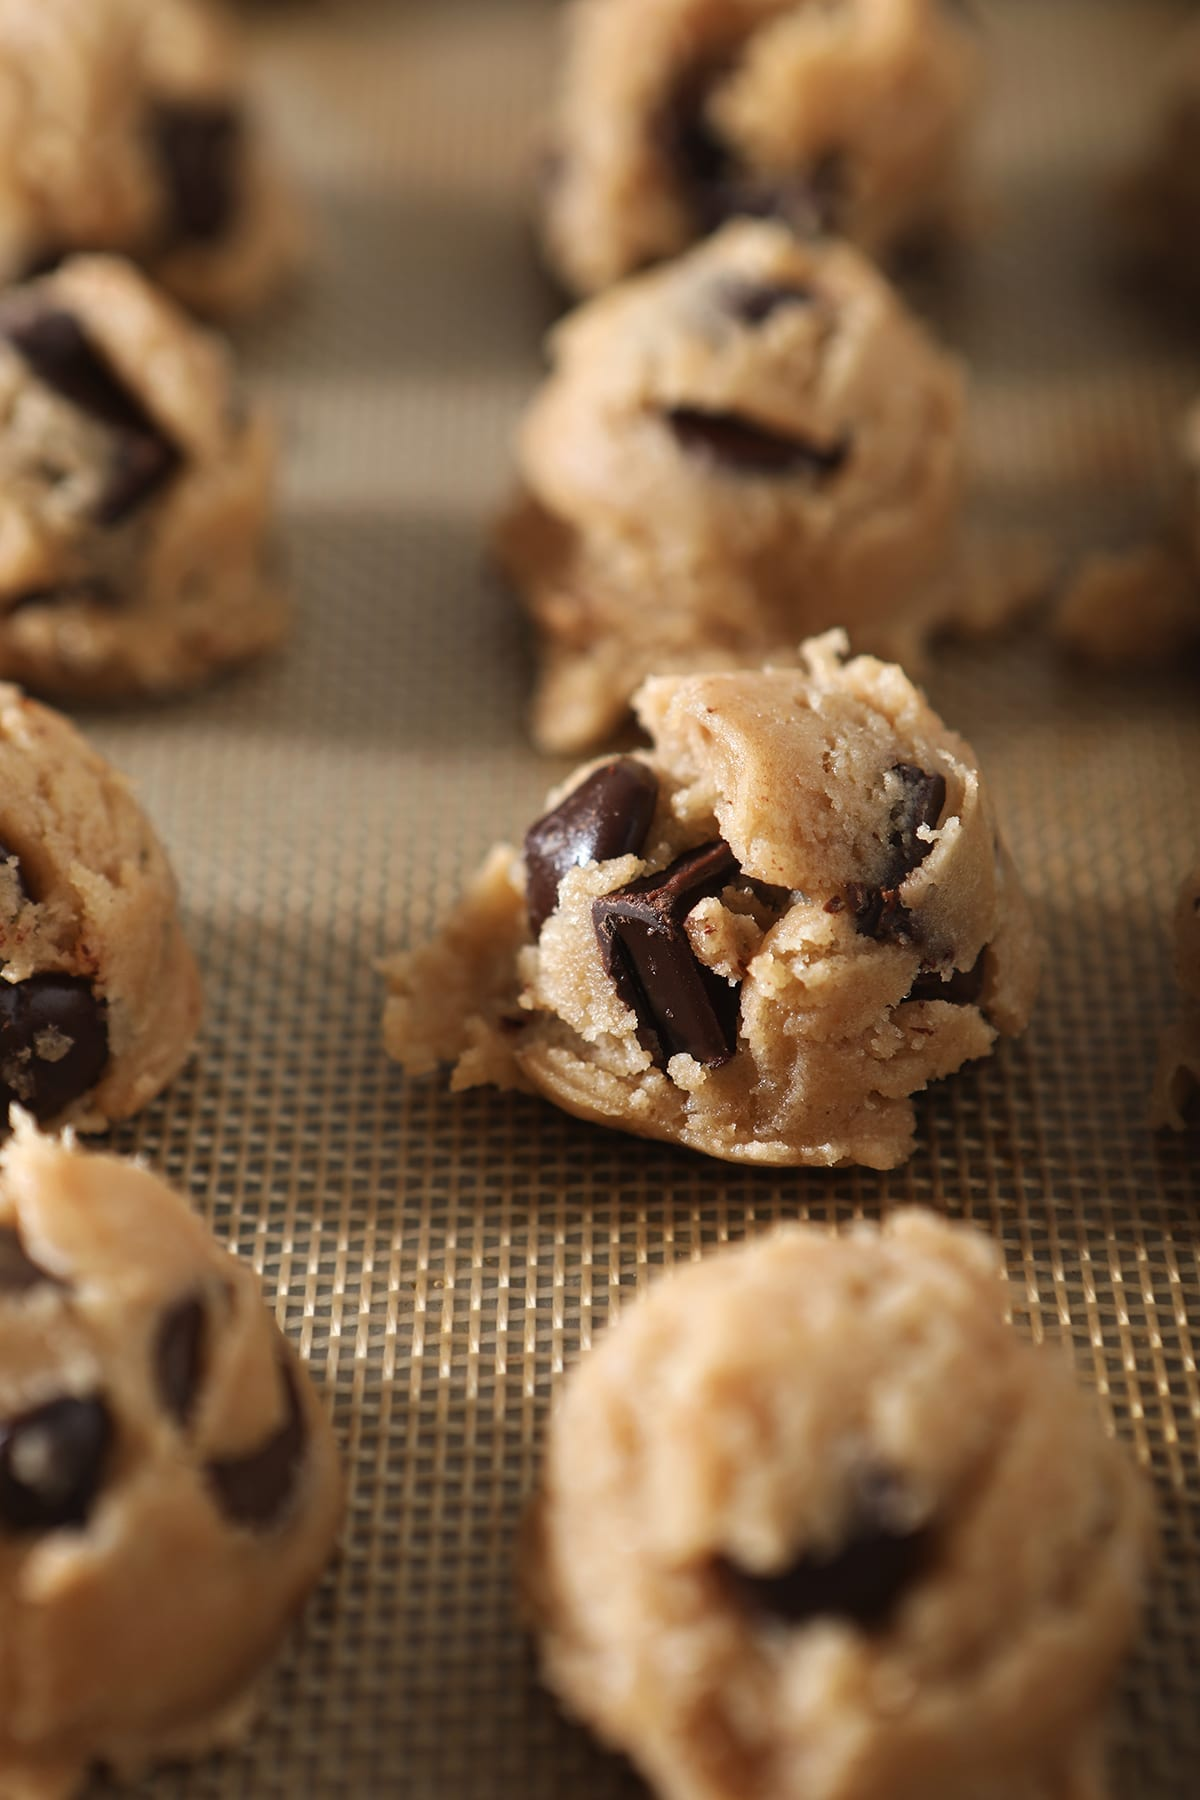 Chocolate Chip Cookie Dough, in scoops, is shown on a baking sheet before it chills